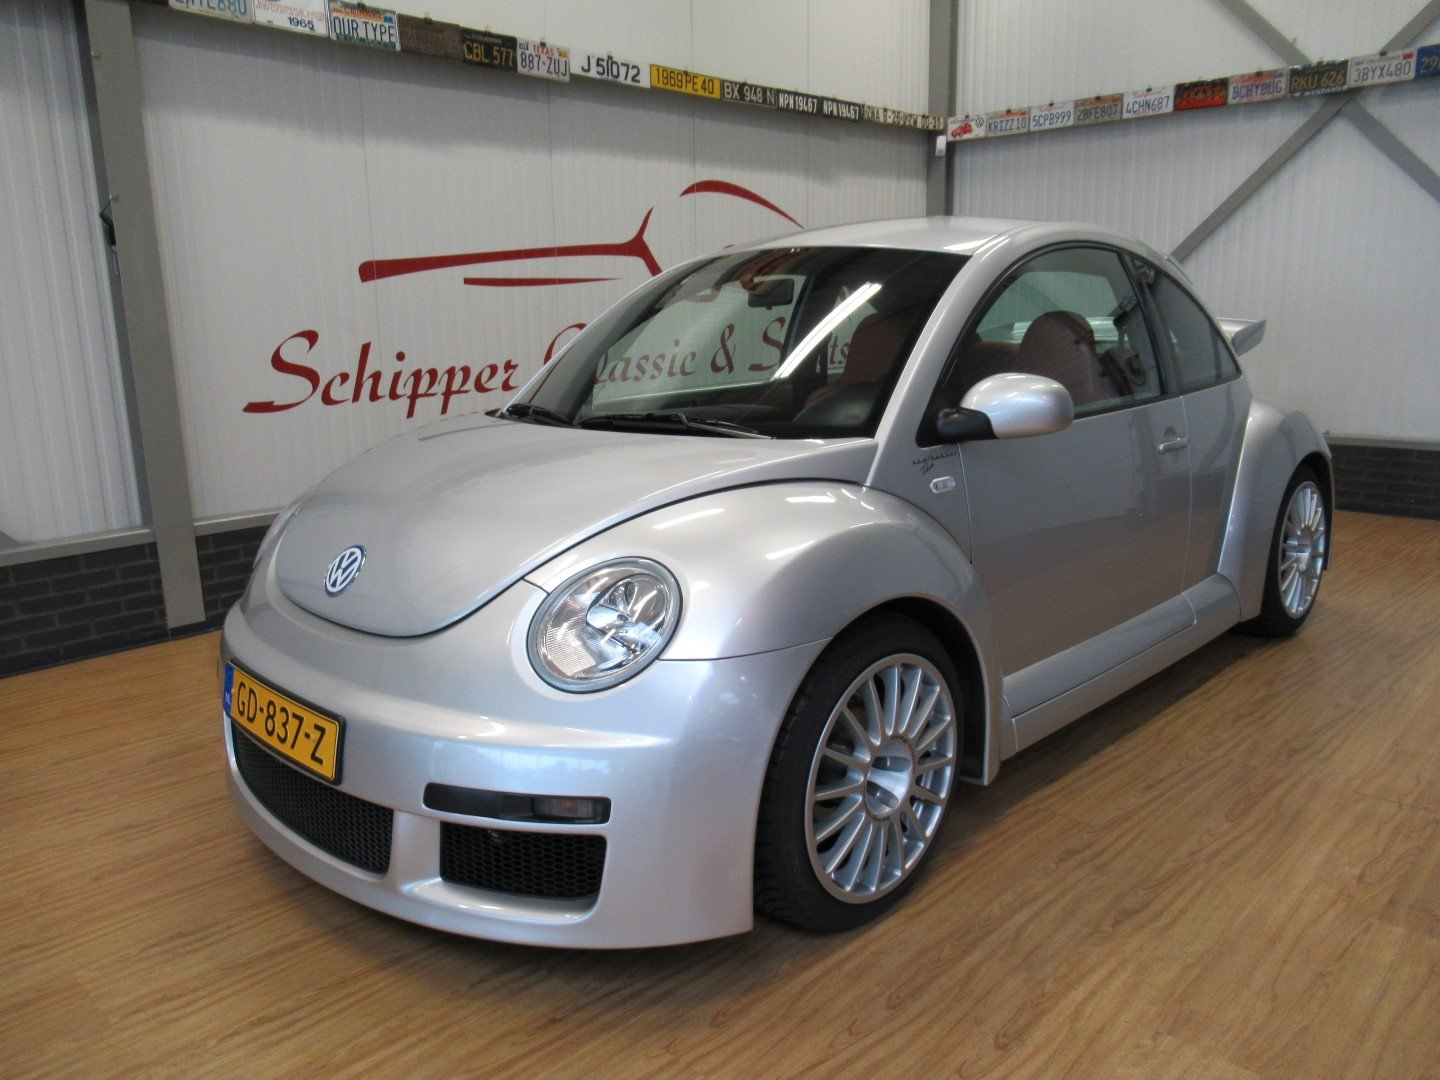 2002 Volkswagen Beetle RSI Limited Edition no. 56 of 250 For Sale (picture 1 of 6)